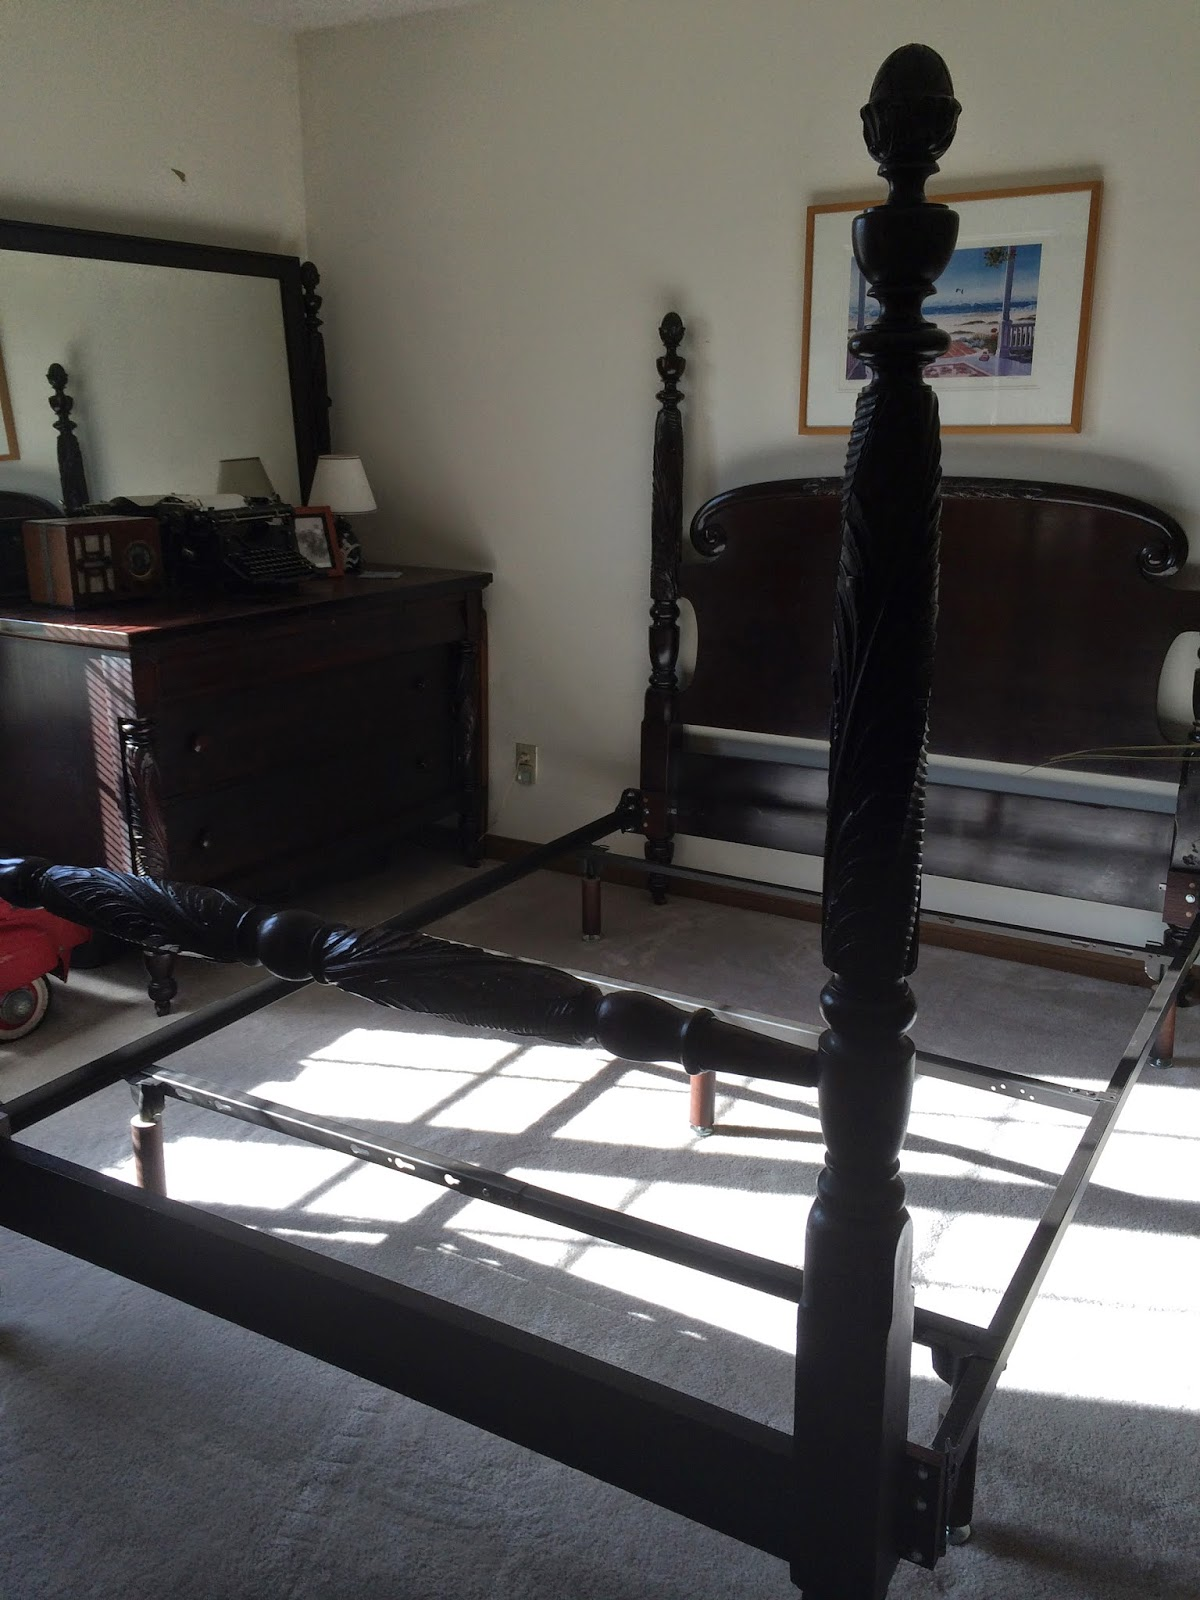 A New Chapter: DIY: Converting antique bed to queen mattress